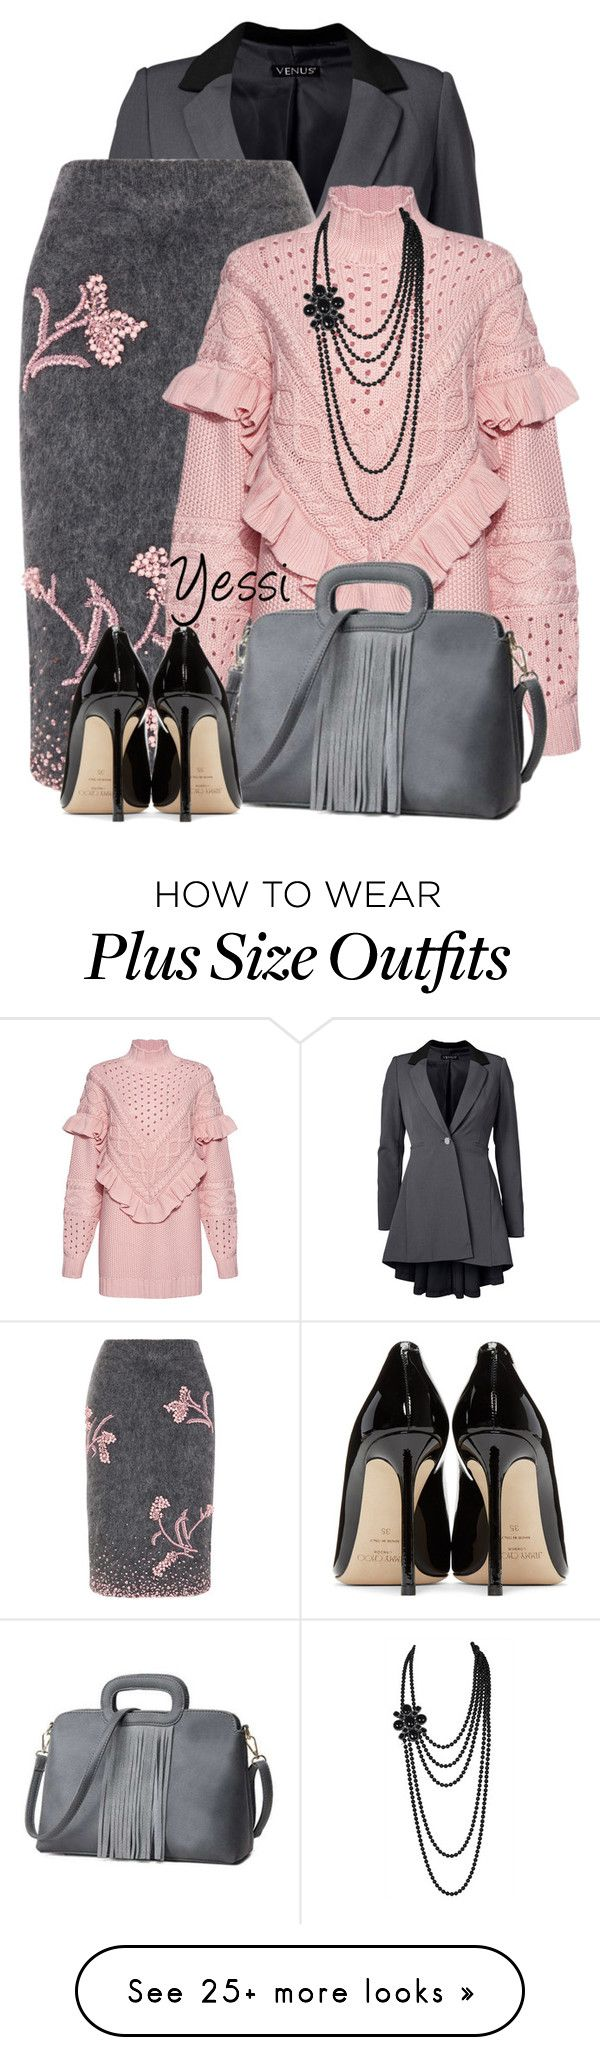 """""""~  Long Jacket with Skirt  ~"""" by pretty-fashion-designs on Polyvore featuring Venus, Prada, Mother of Pearl, Chanel, Jimmy Choo and plus size clothing"""